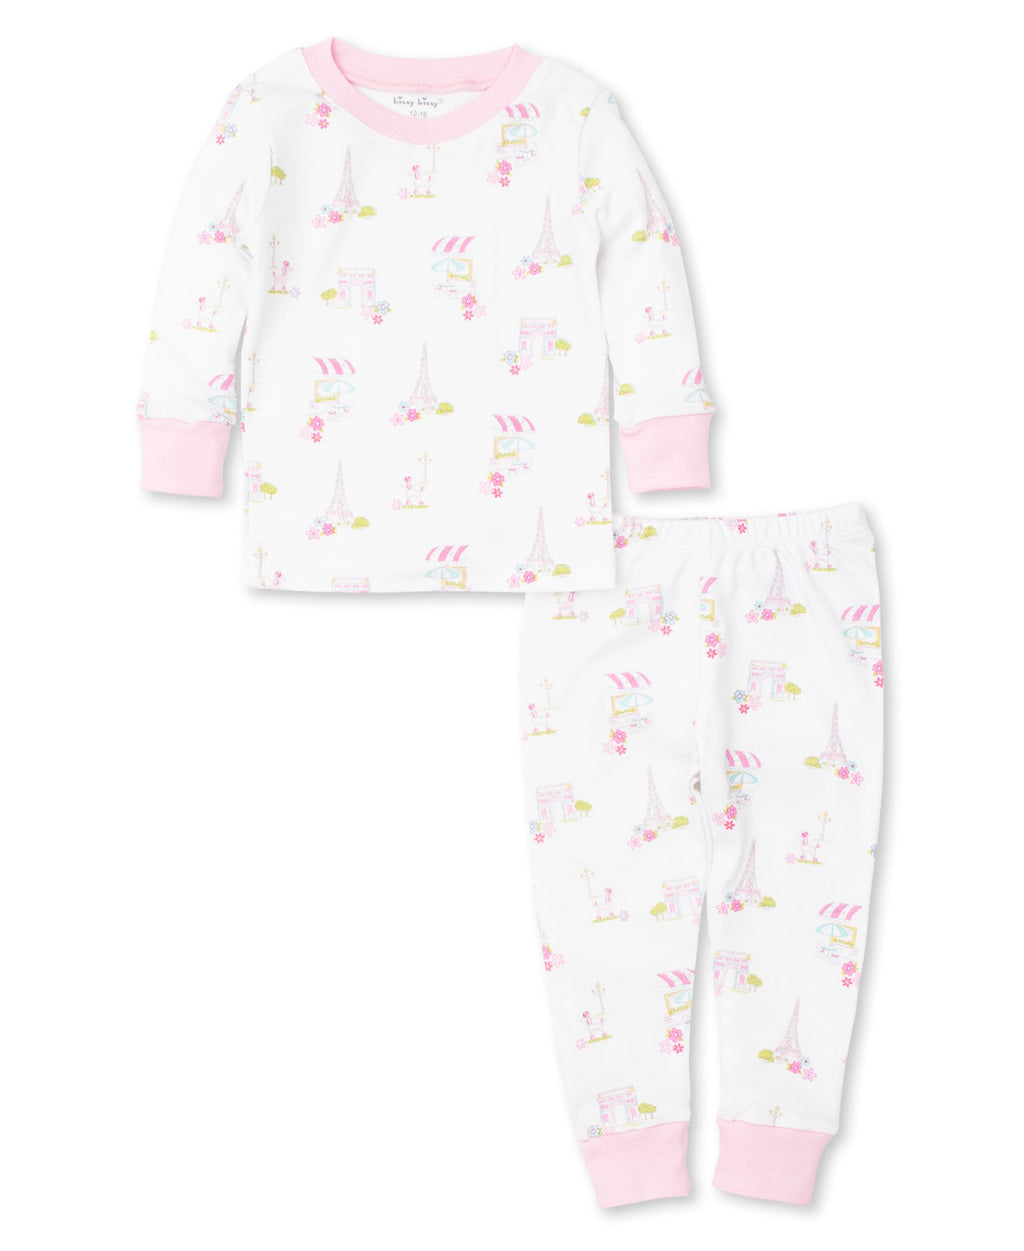 Parisian Summer Toddler Pajama Set